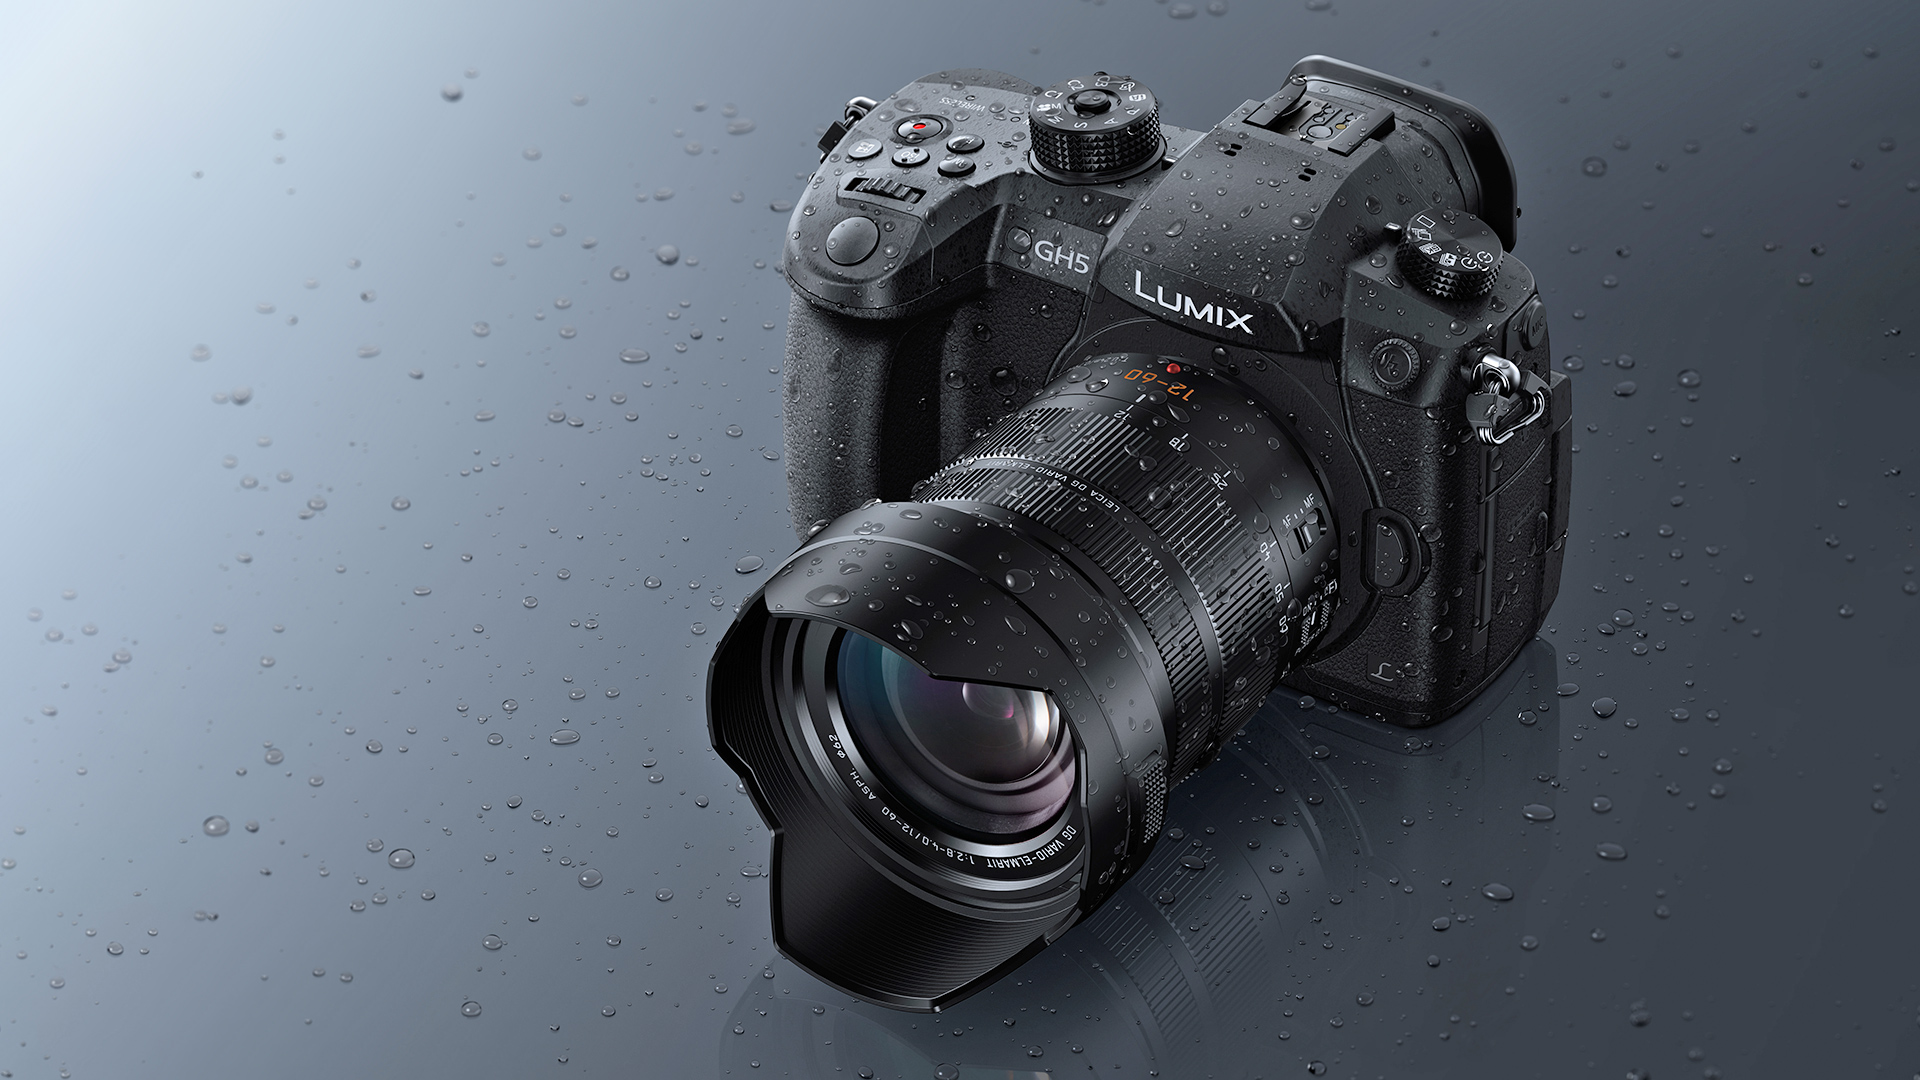 The Panasonic DC-GH5 is still a highly capable camera in 2020